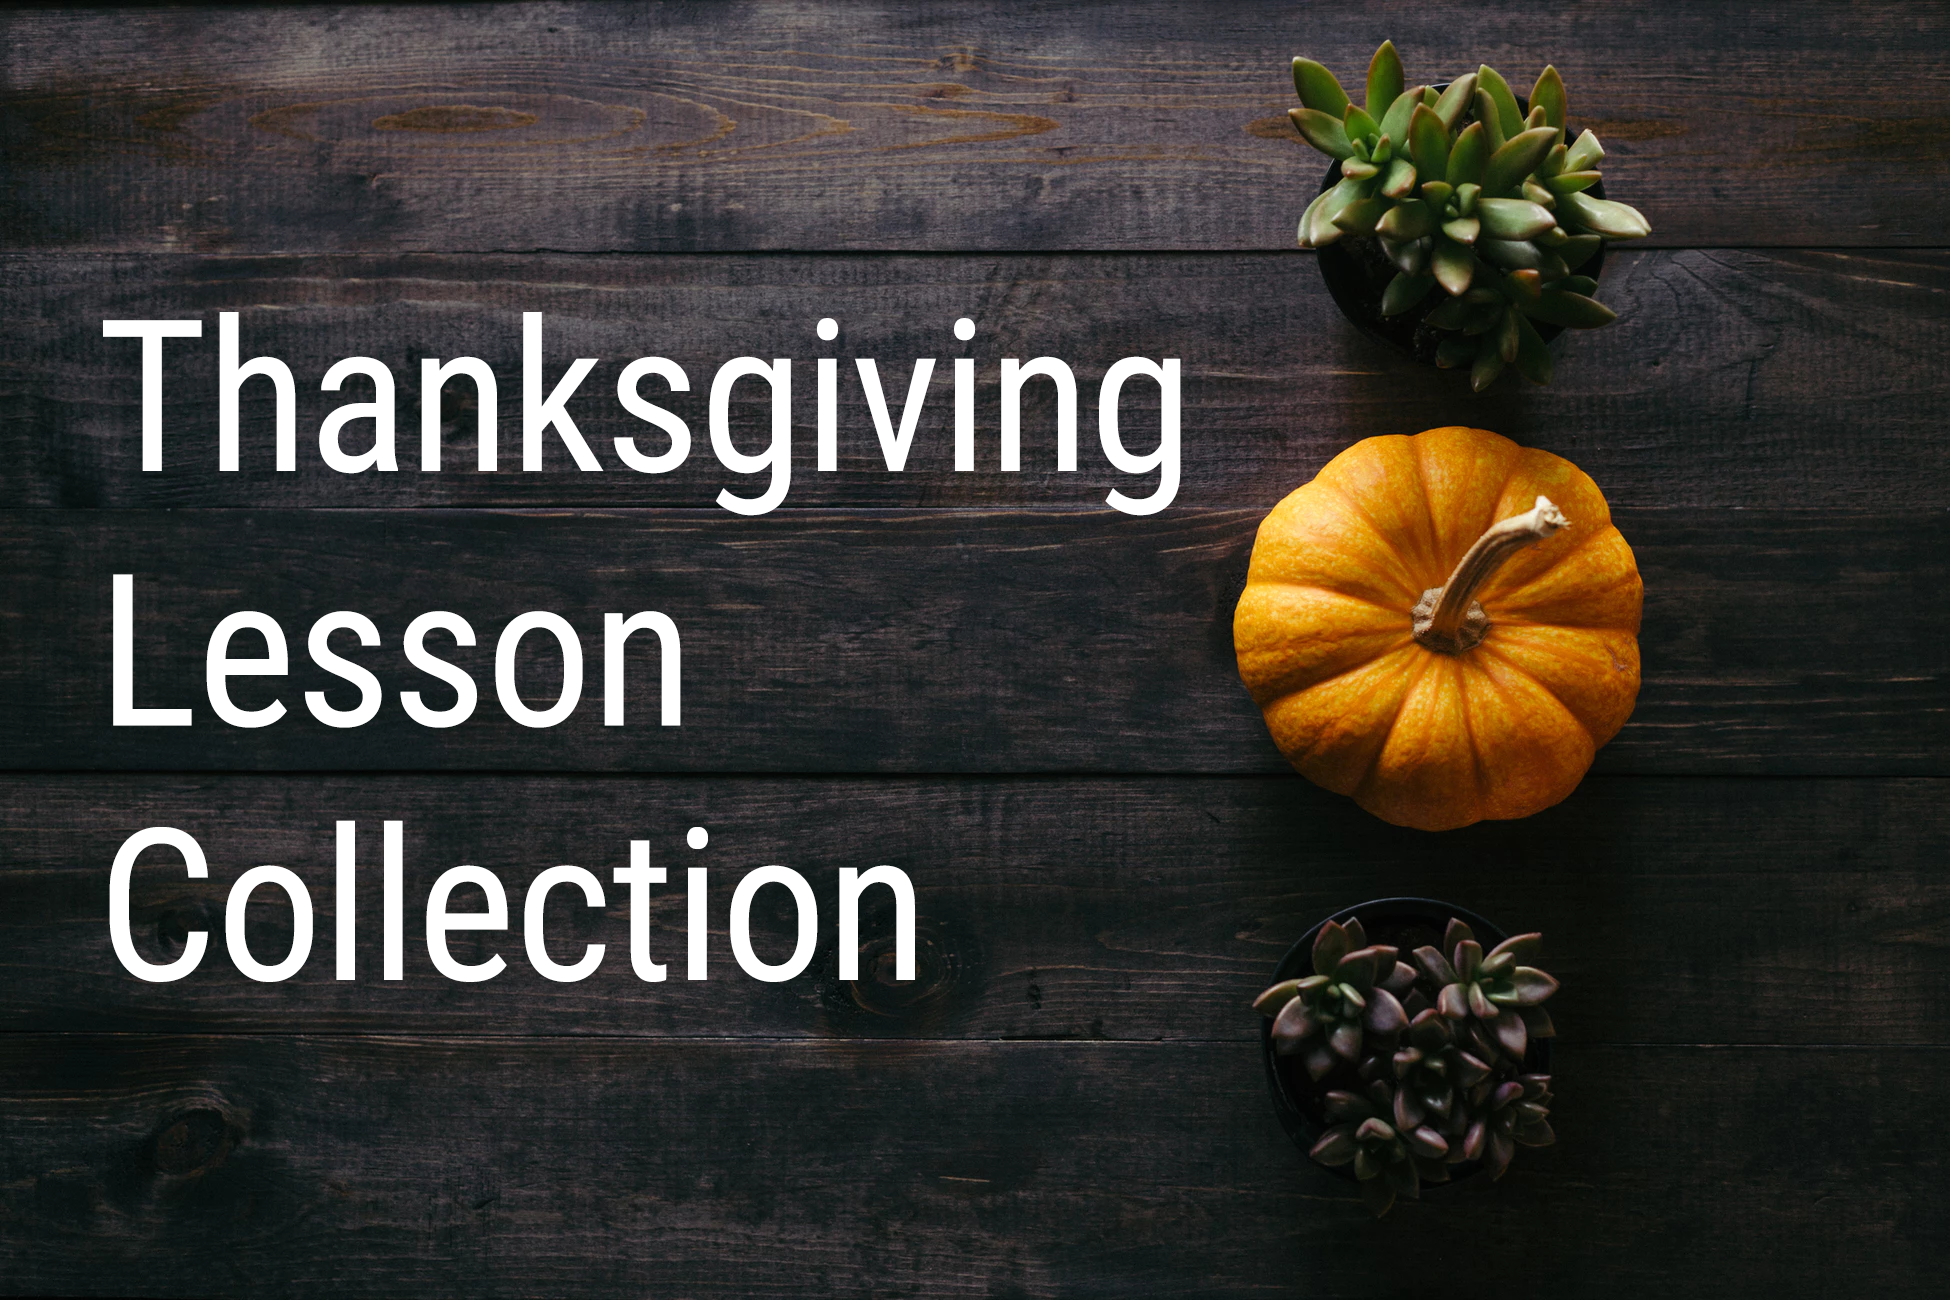 Thanksgiving Lesson Collection